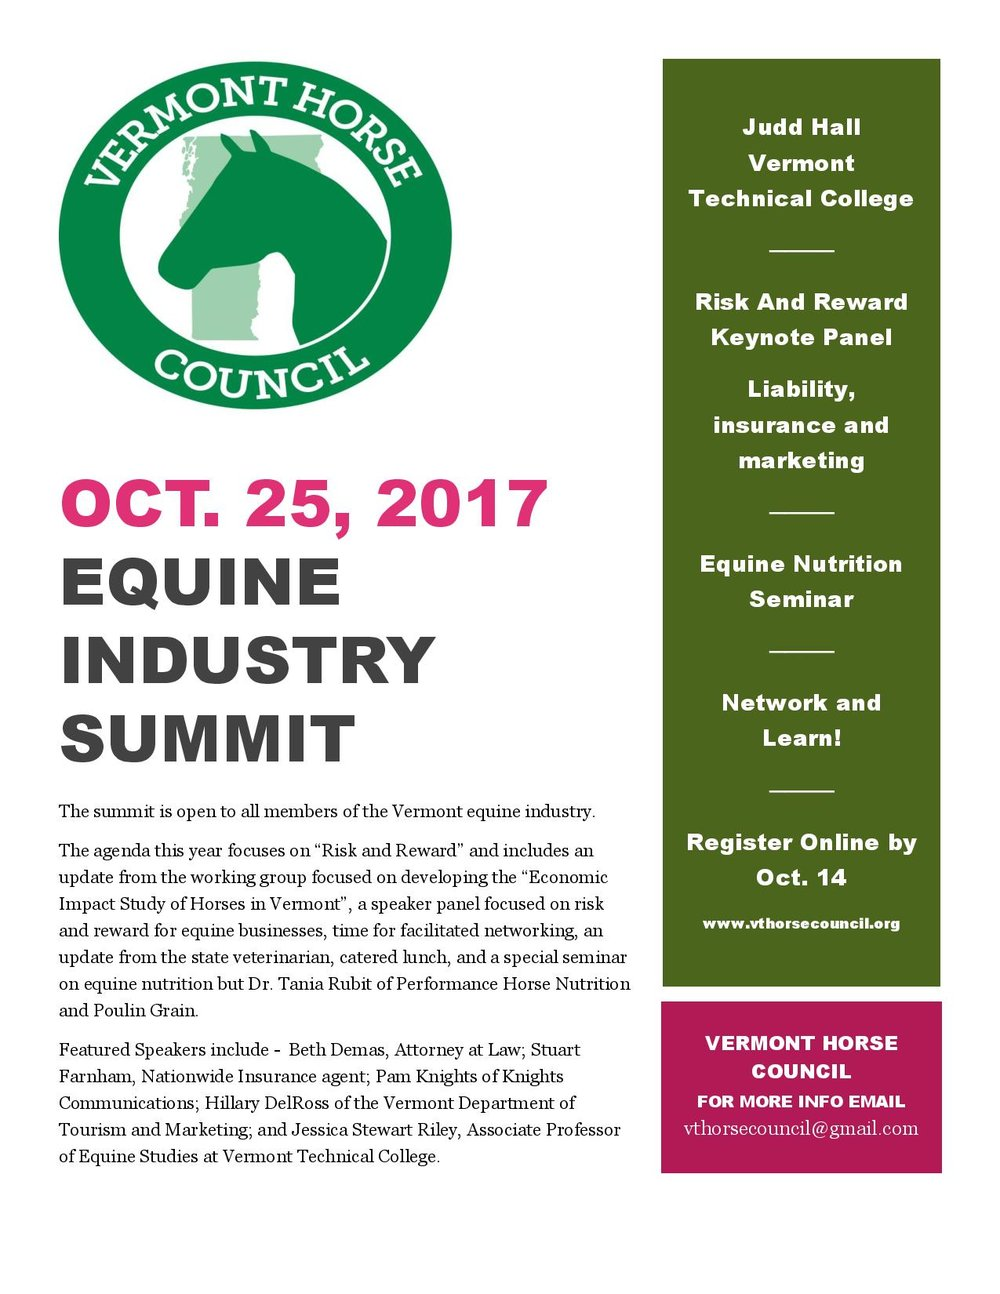 2017 Summit Flyer (1)-page-001.jpg